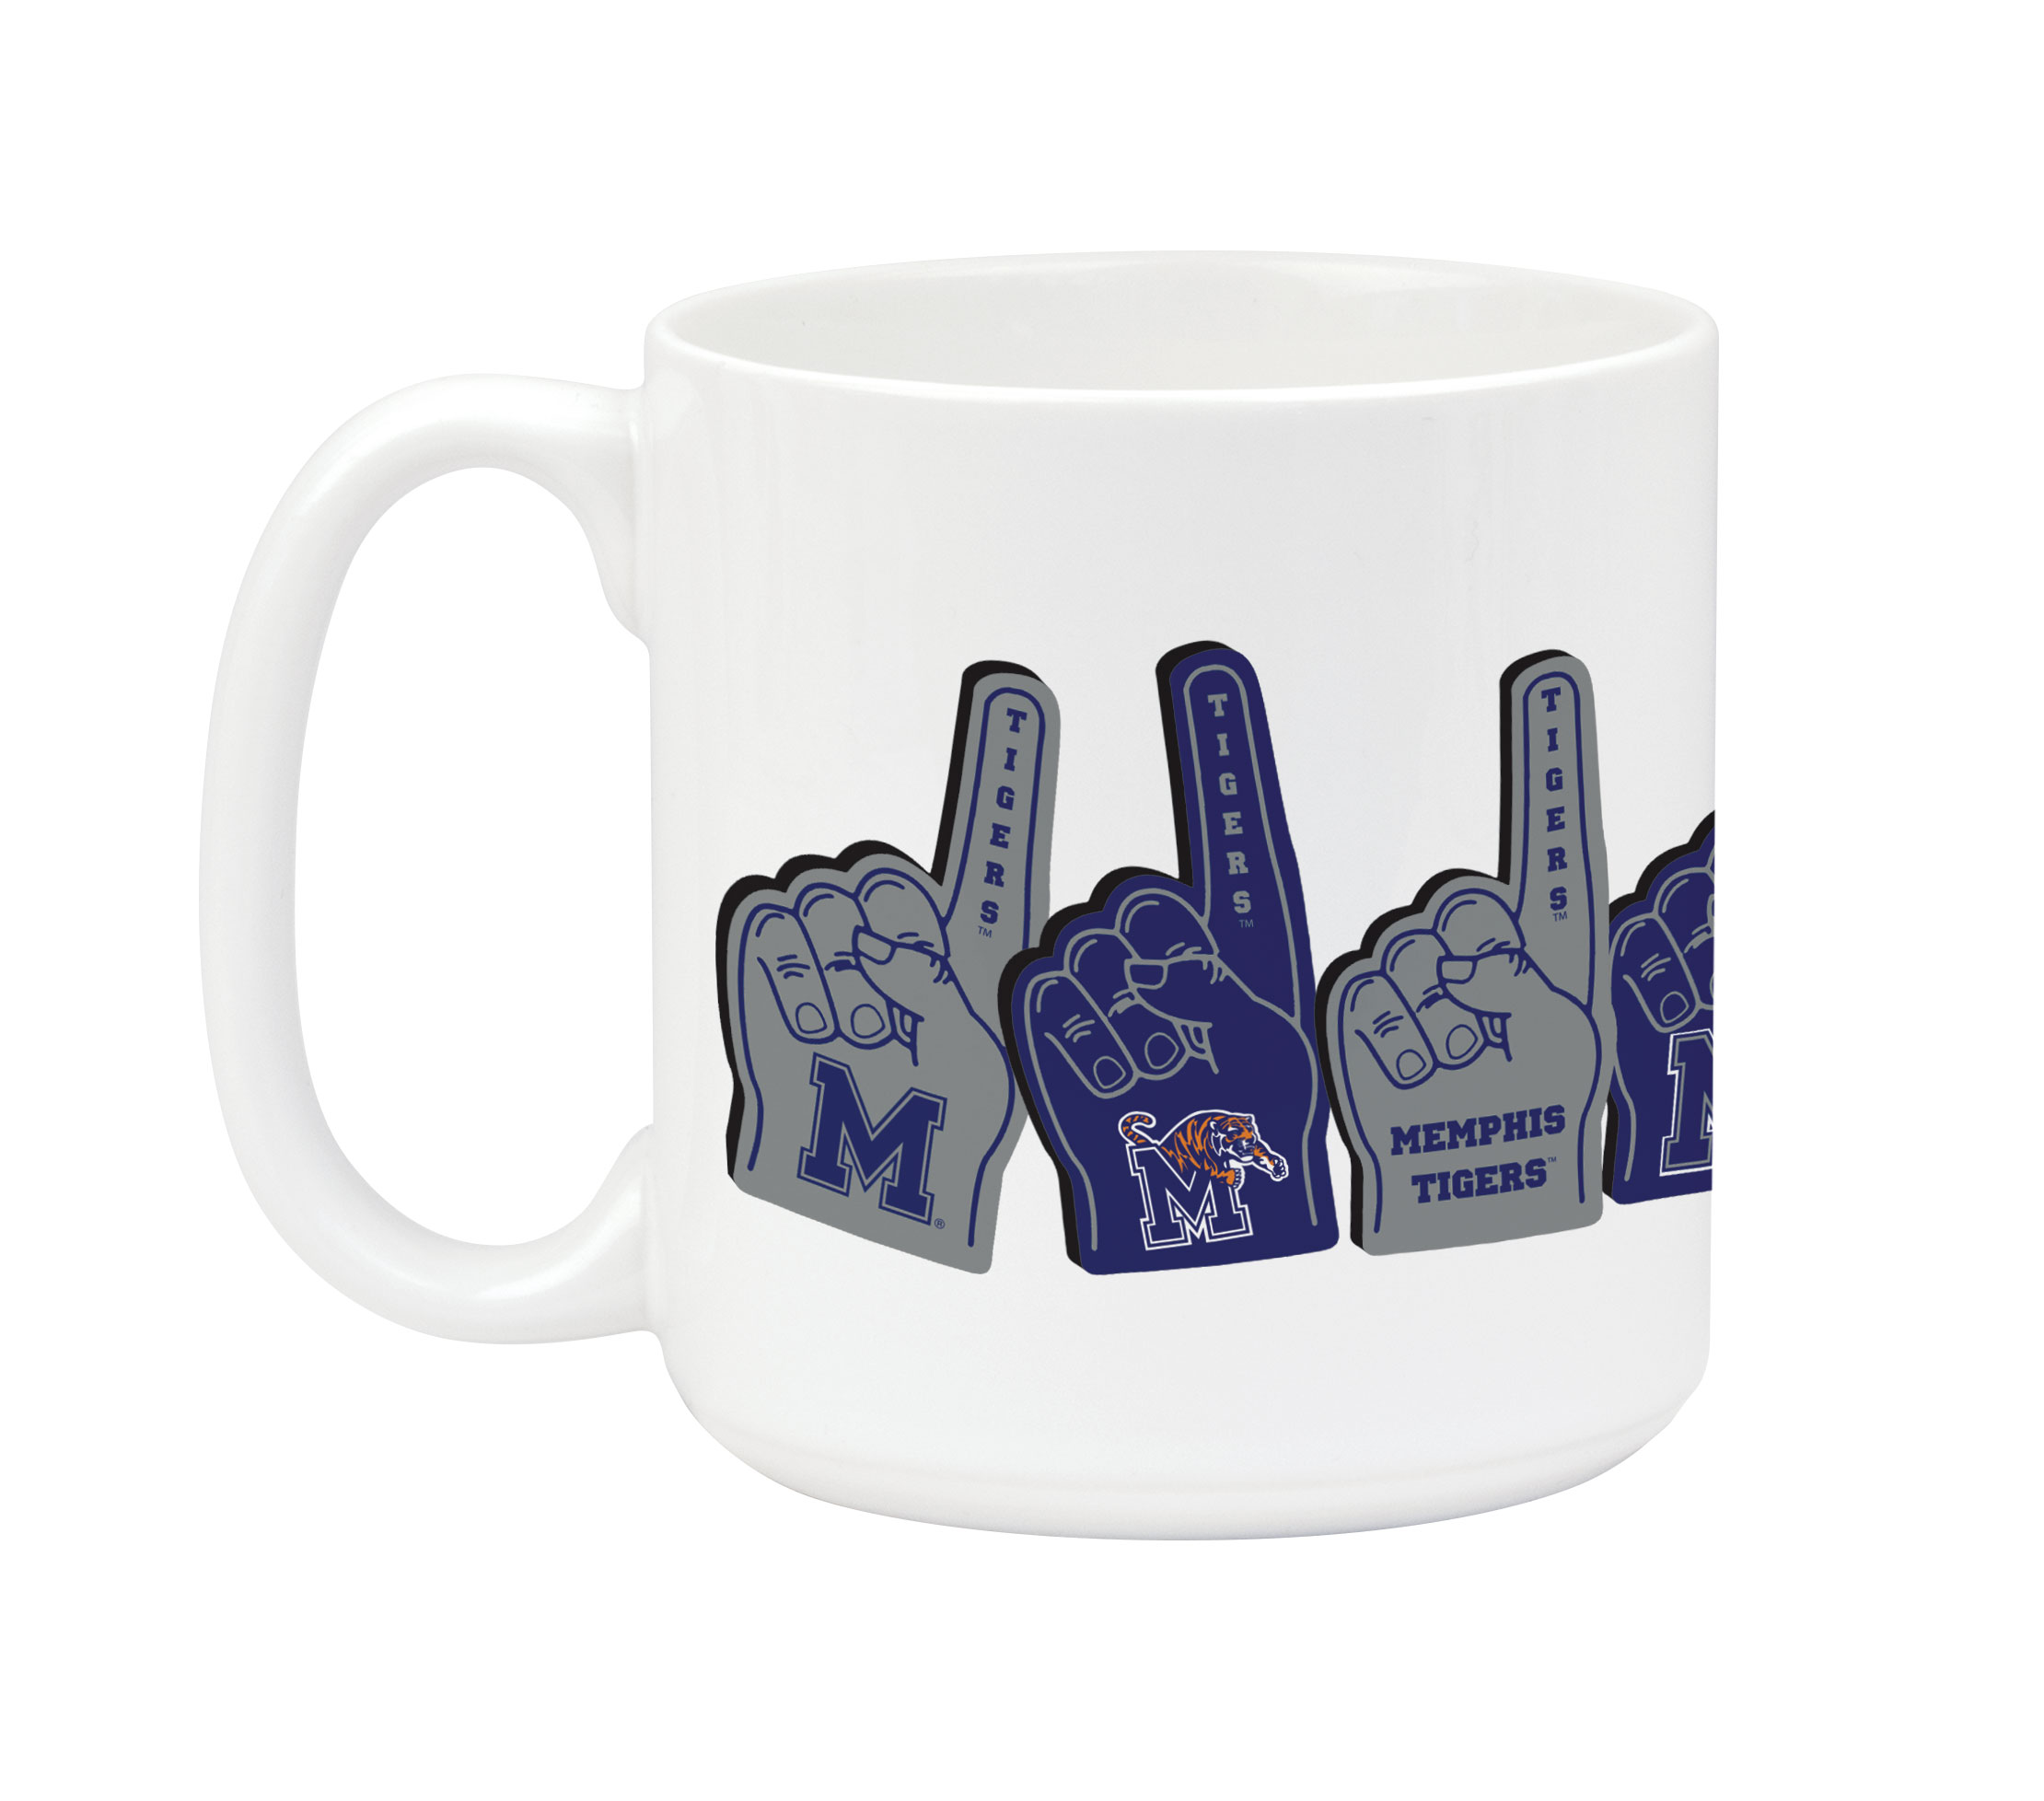 University of Memphis Foam Finger Mug